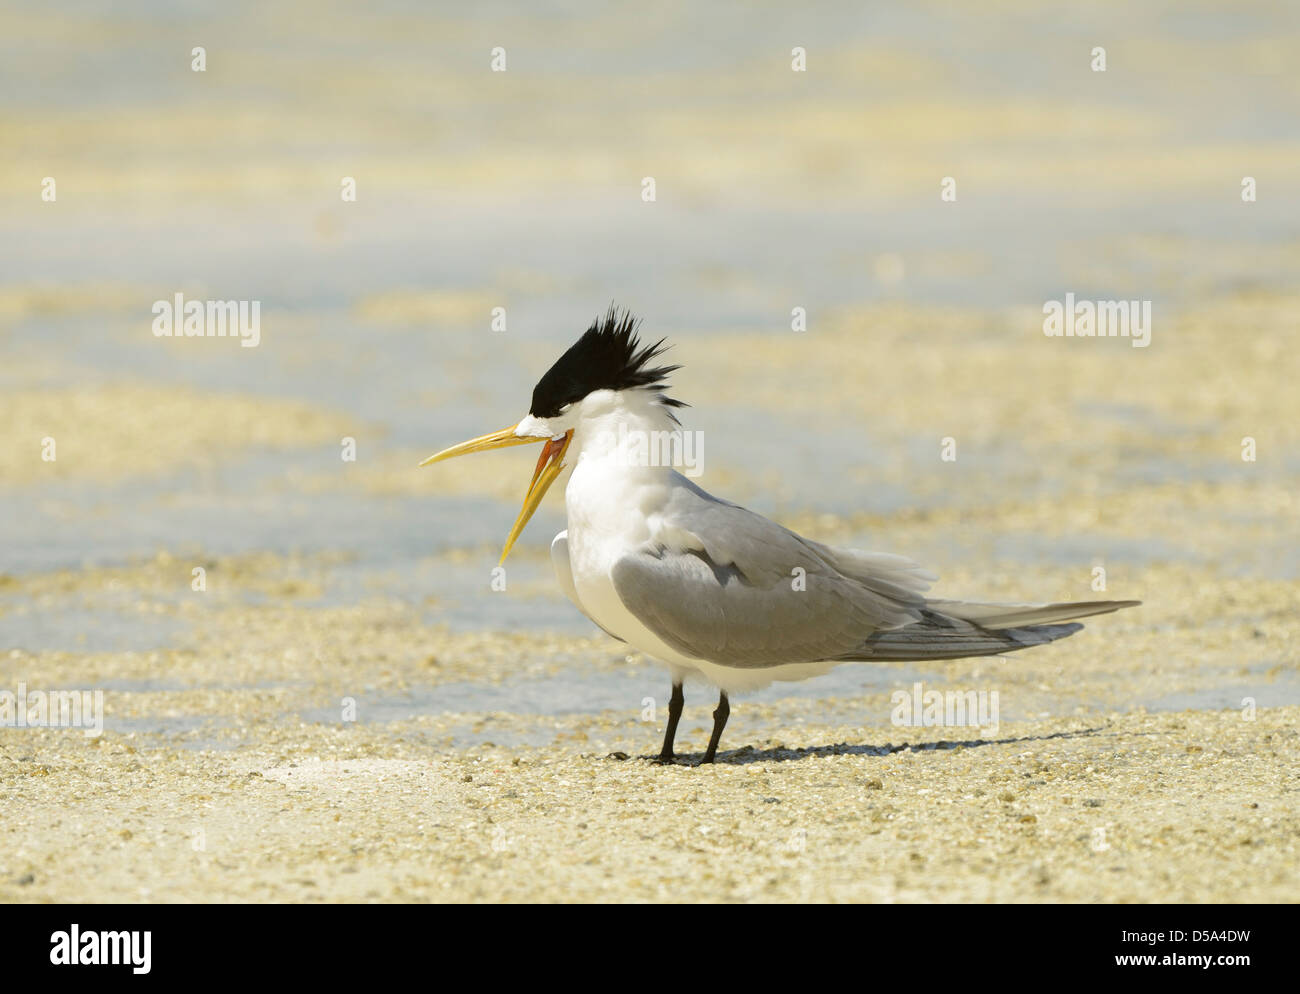 Greater Crested or Swift Tern (Thalasseus bergii) standing on beach, squawking, Queensland, Australia, November - Stock Image